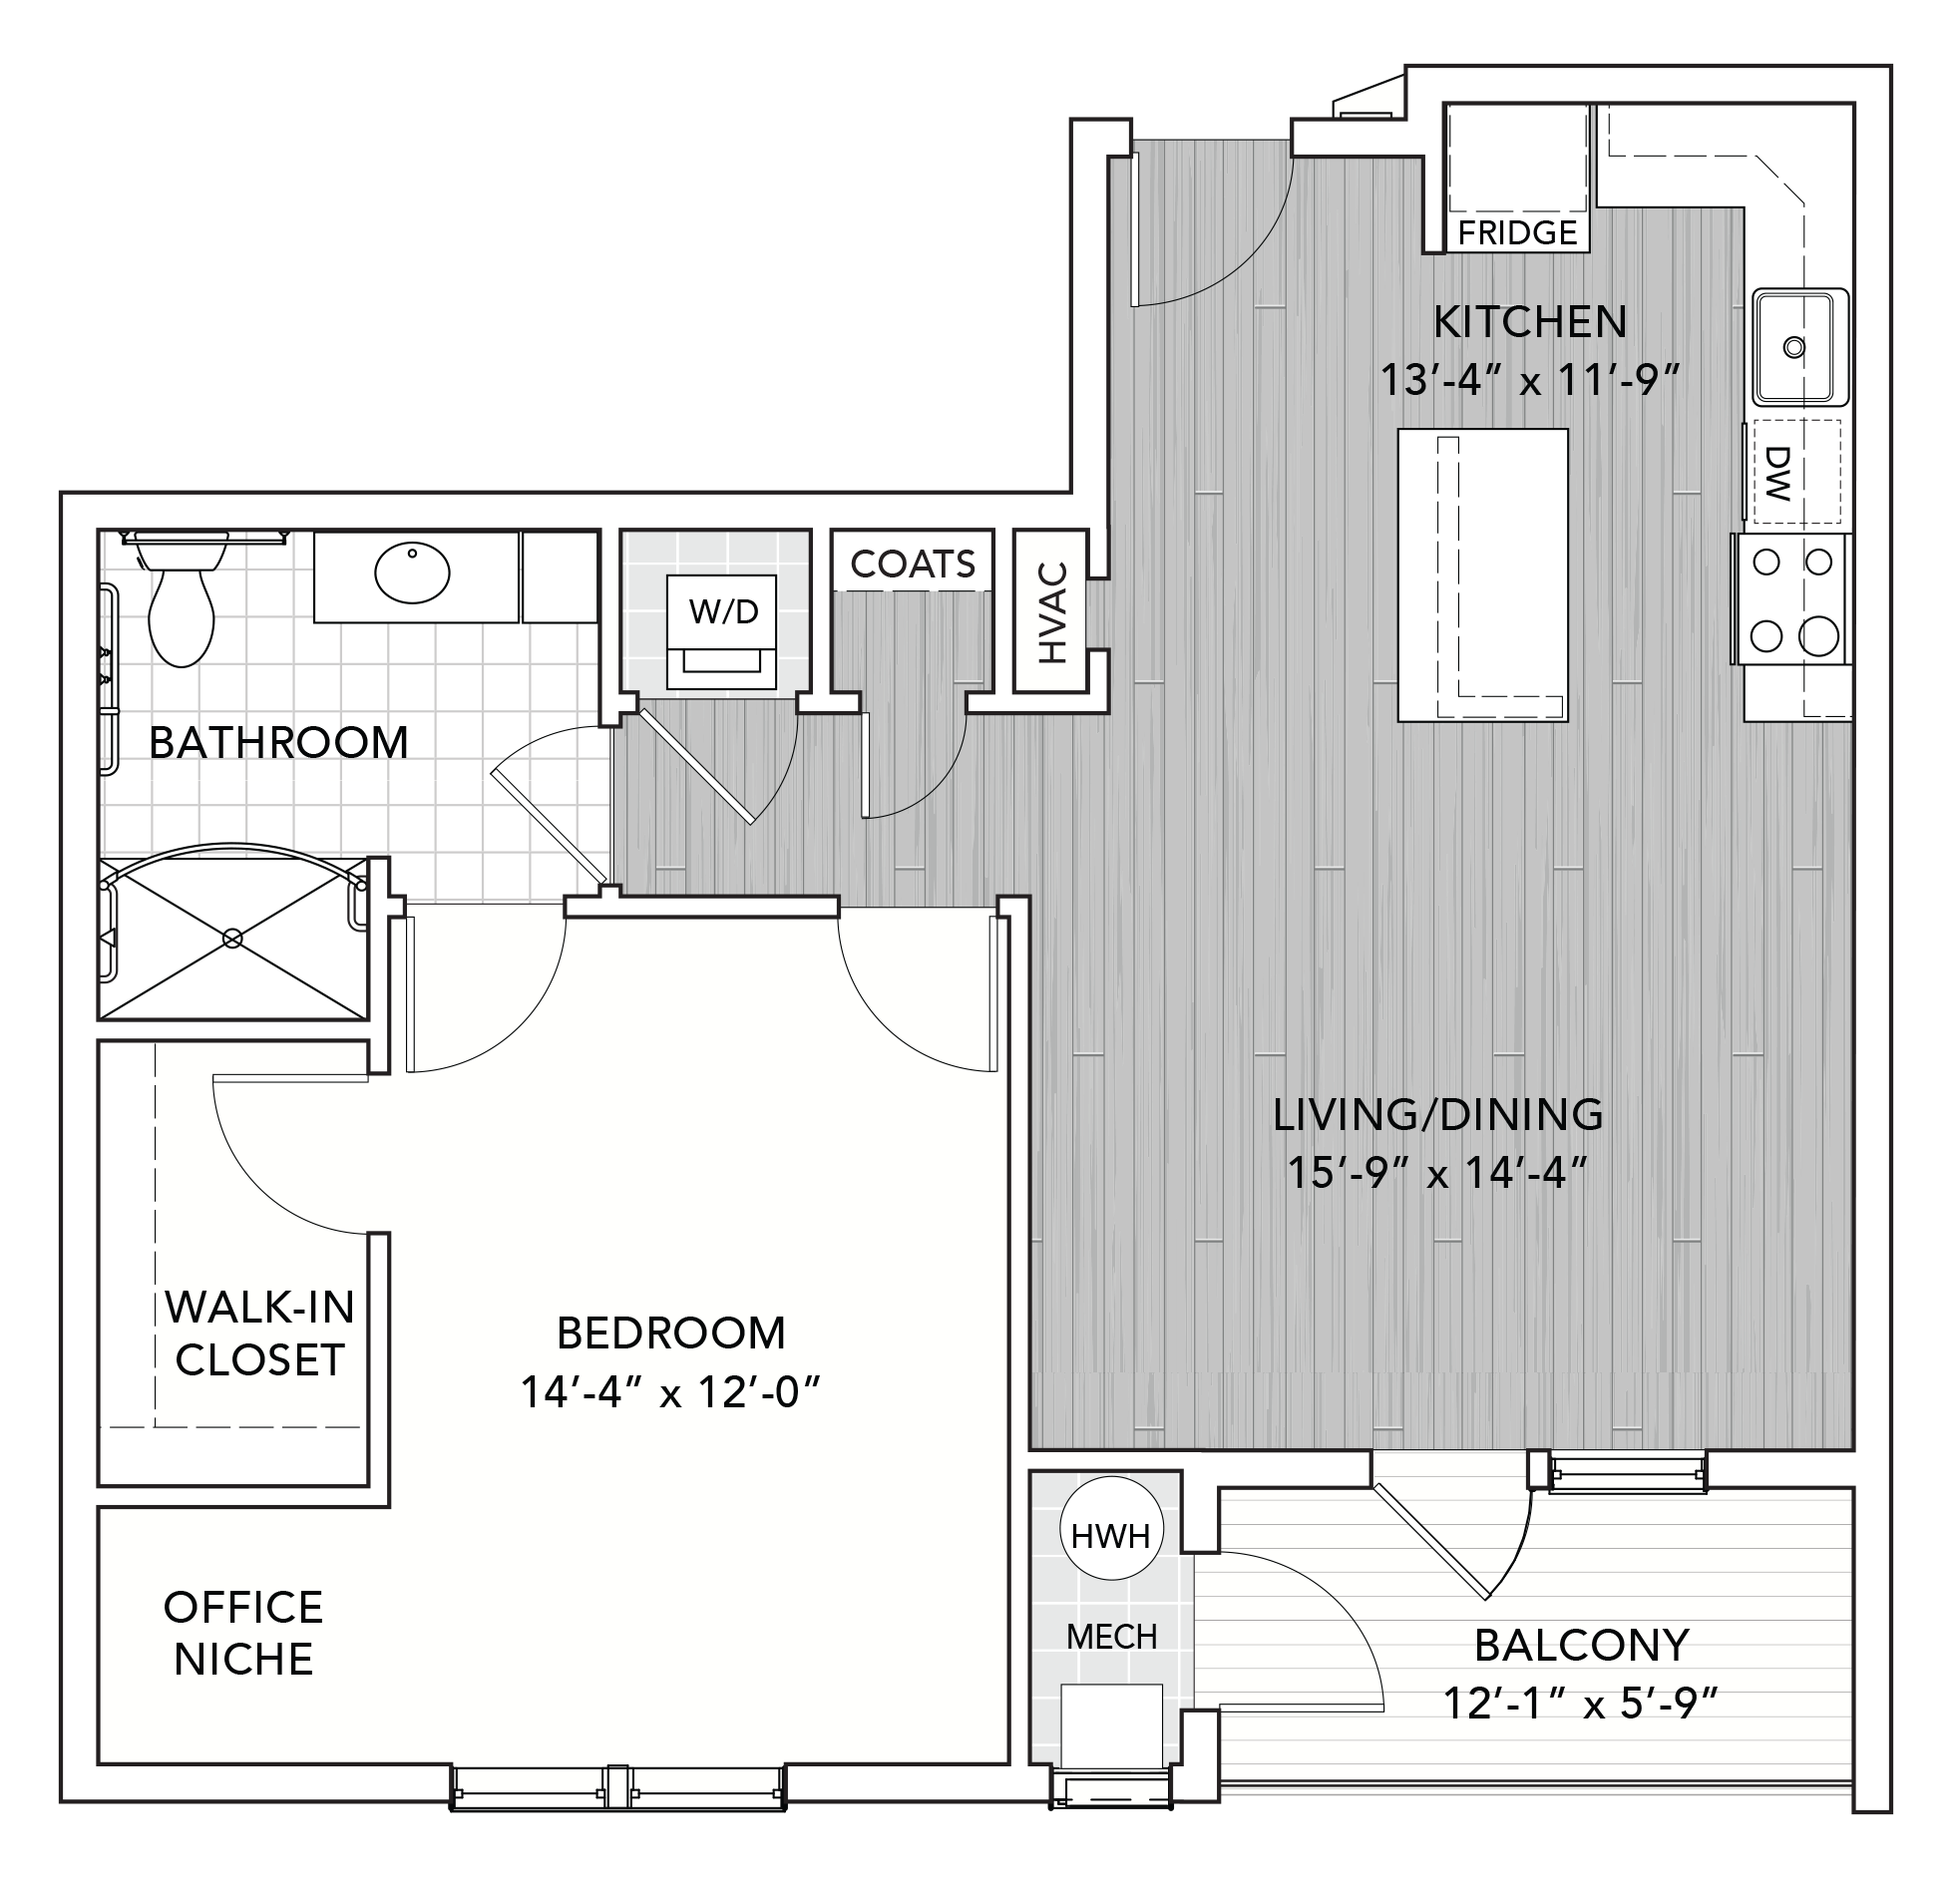 P0655013 parksquare a8 909 2 floorplan